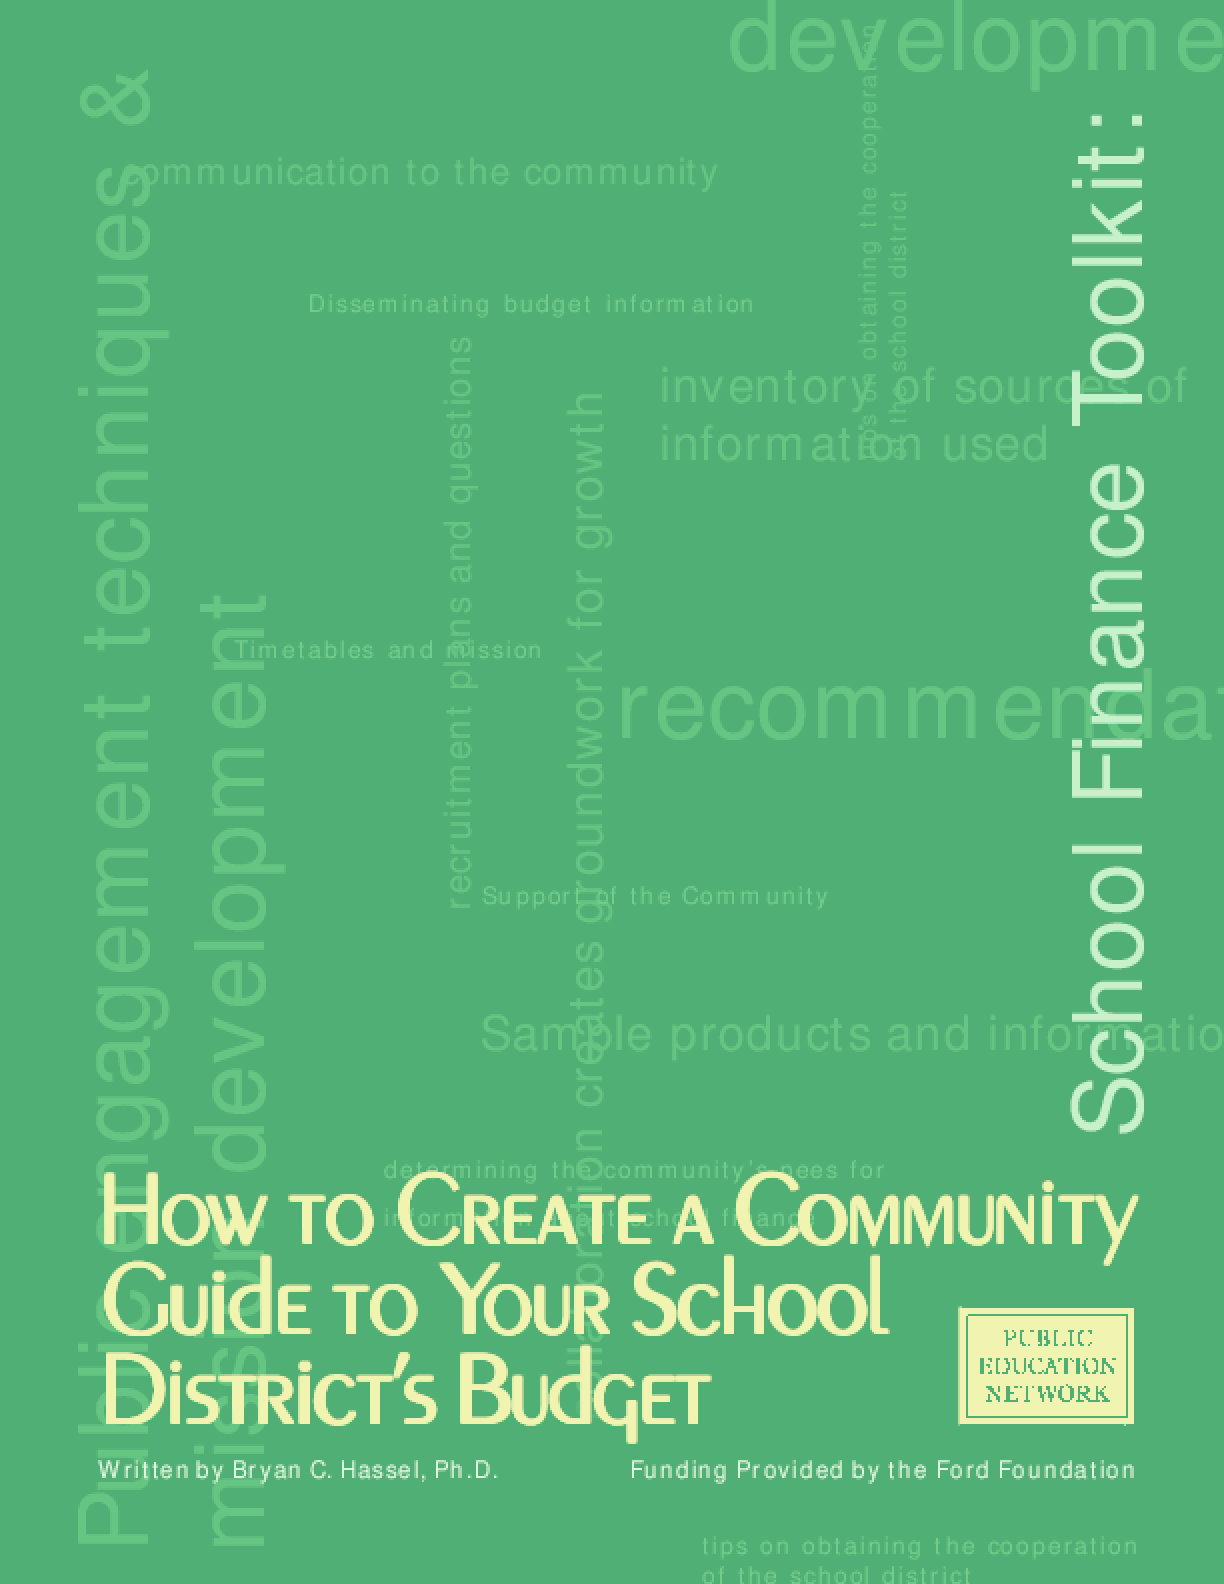 School Finance Toolkit: How to Create a Community Guide to Your School District's Budget